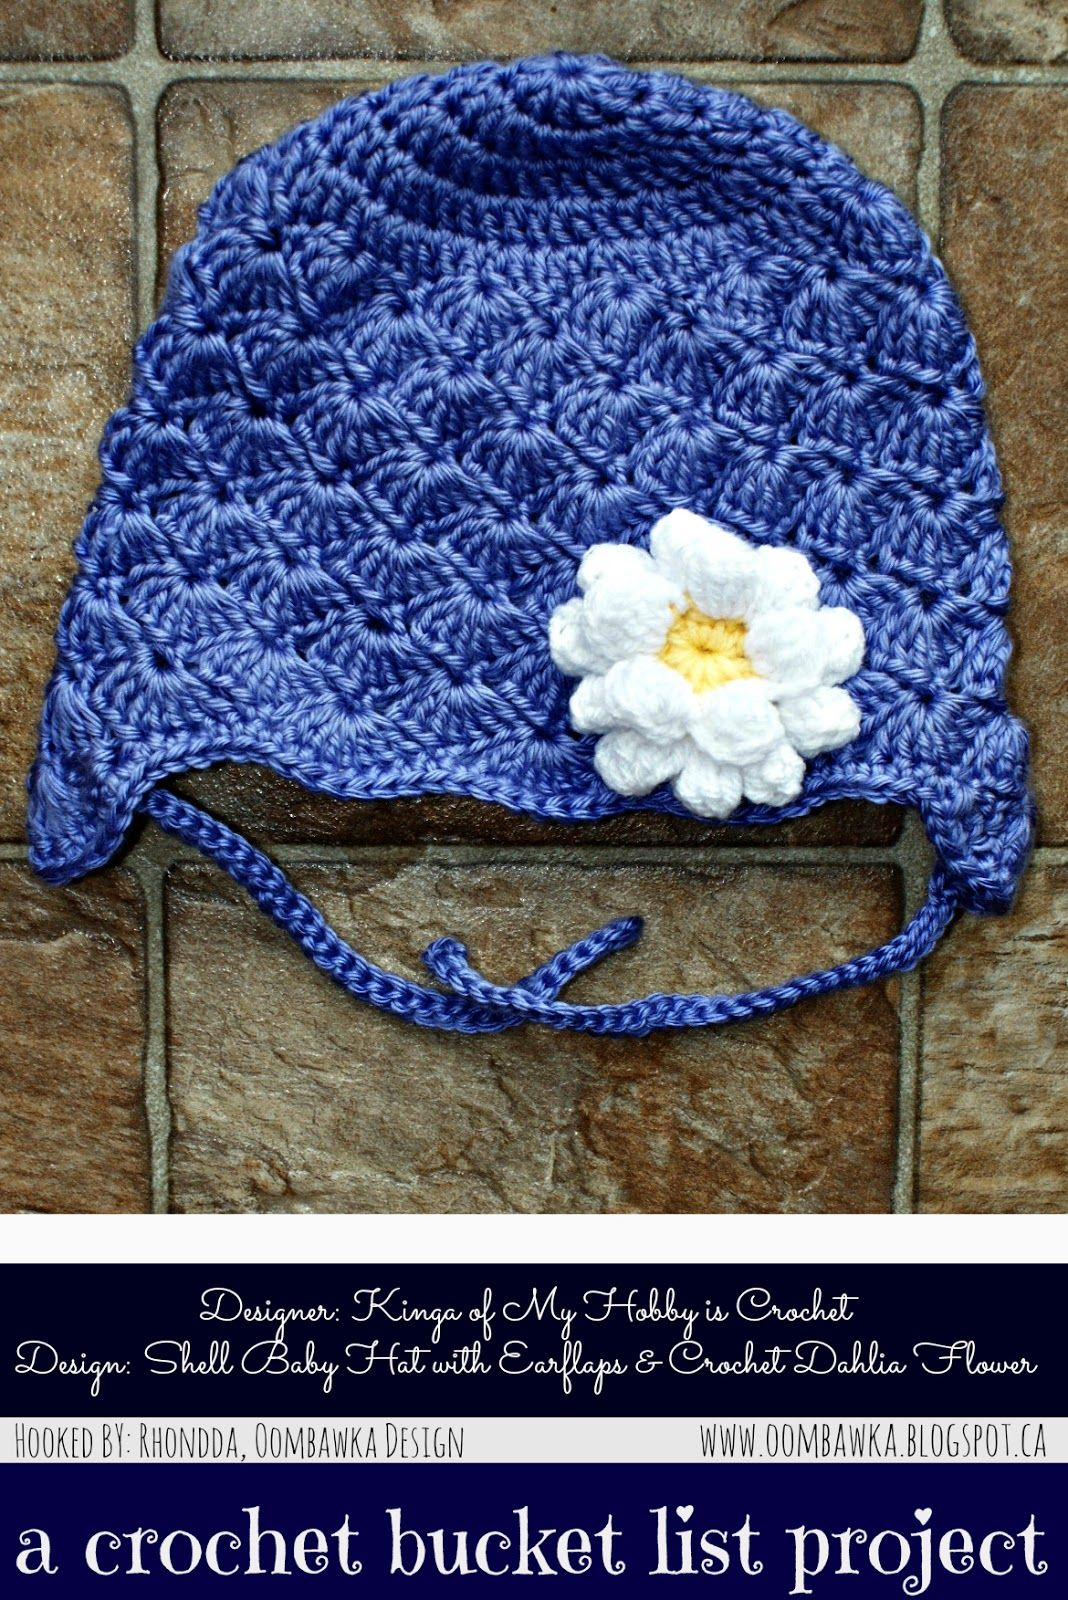 A crochet bucket list project shell baby hat with earflaps a crochet bucket list project shell baby hat with earflaps crochet dahlia flower bankloansurffo Images